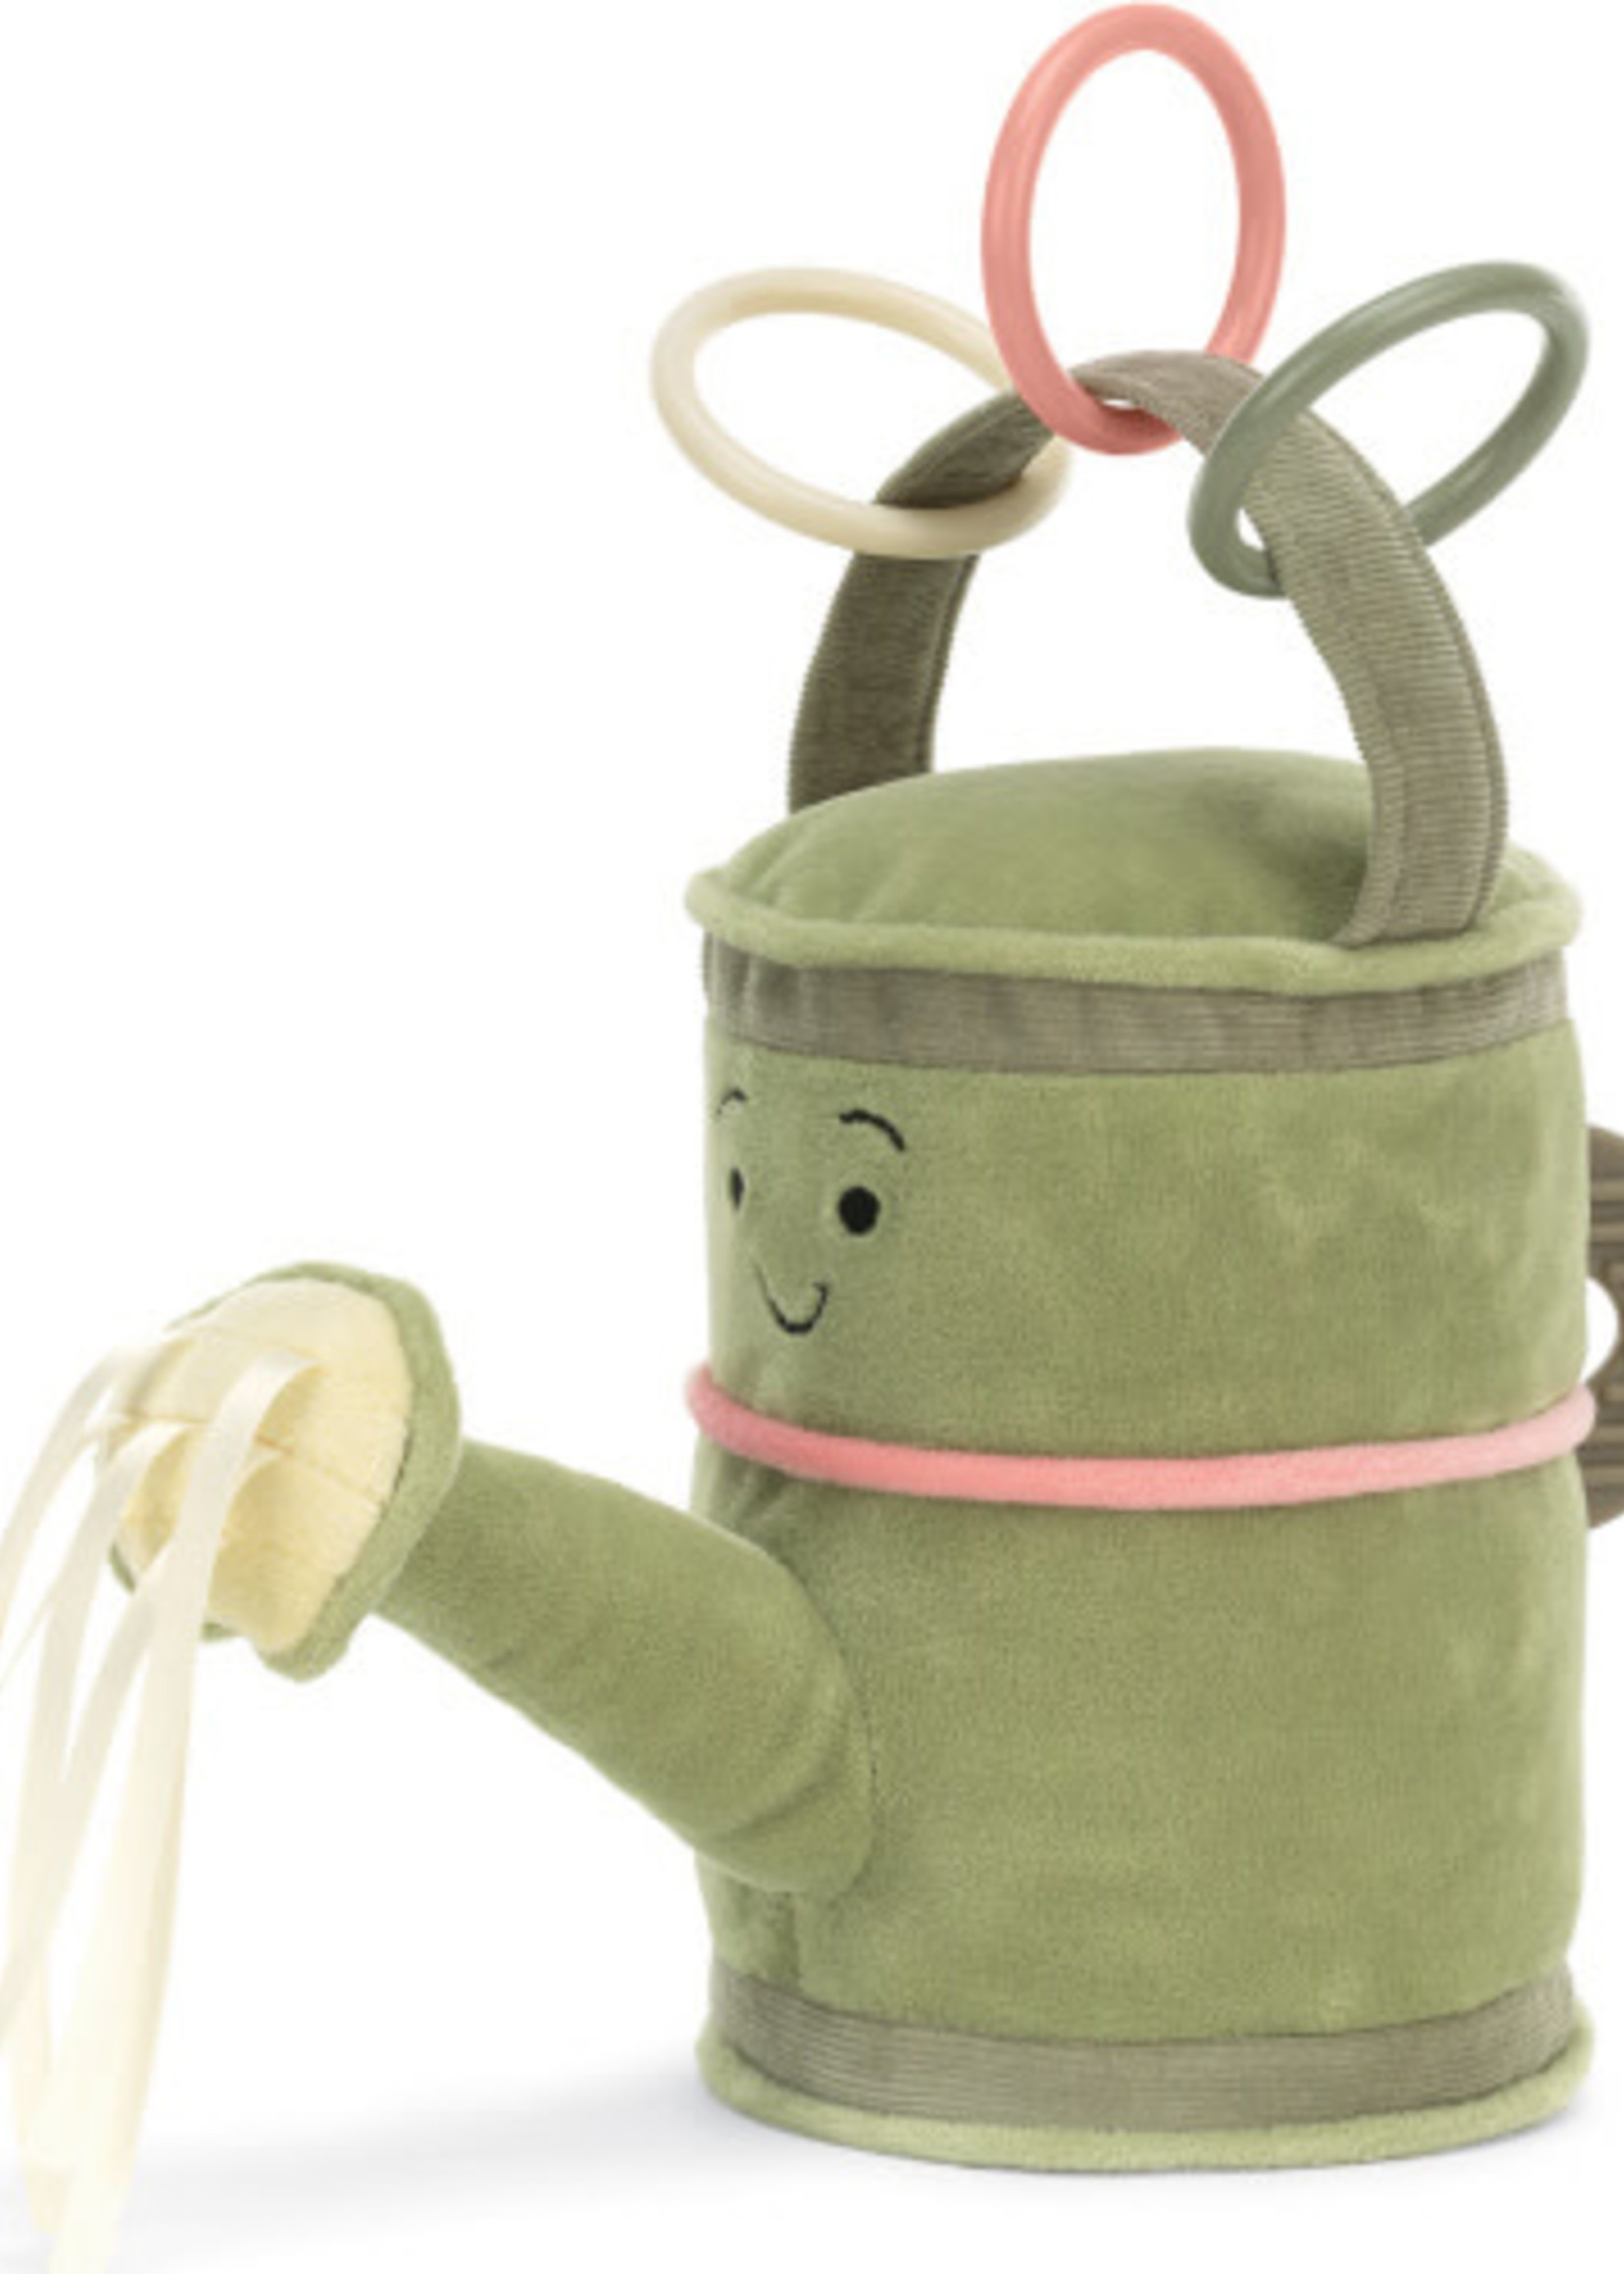 Jellycat JC Whimsy Garden Watering Can Activity Toy